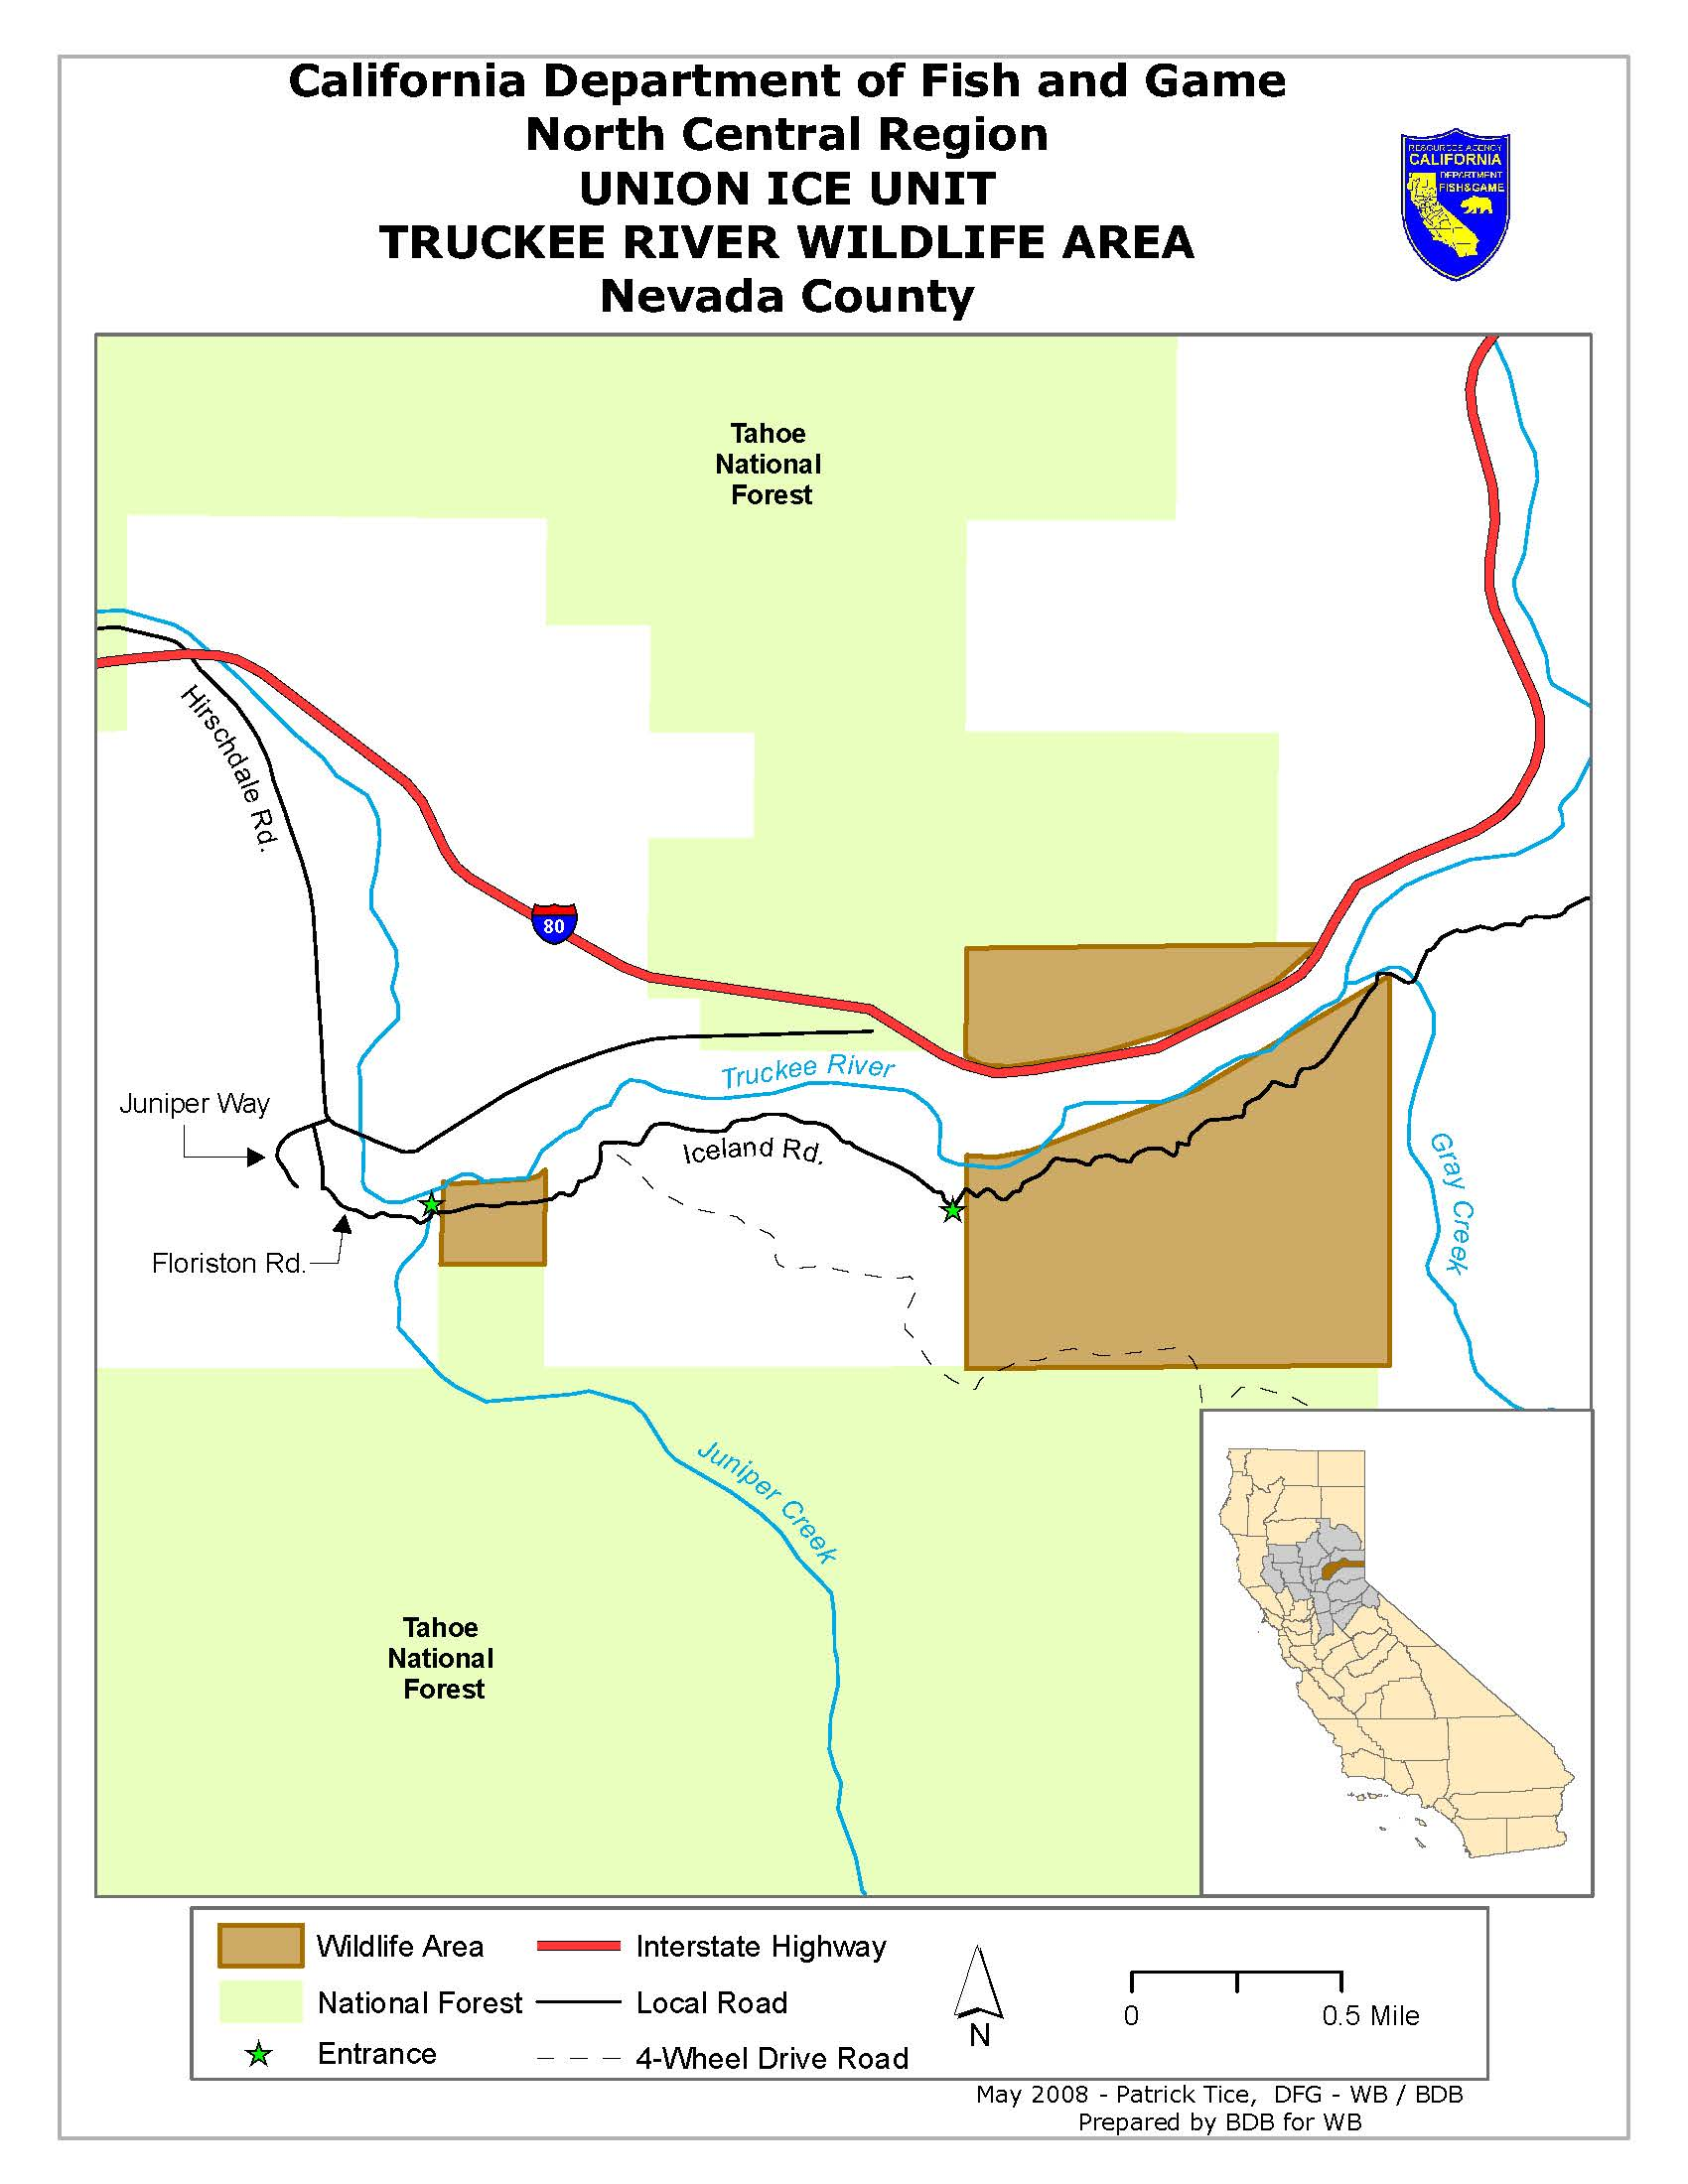 Truckee river wildlife area legal labrador for California 1 day fishing license